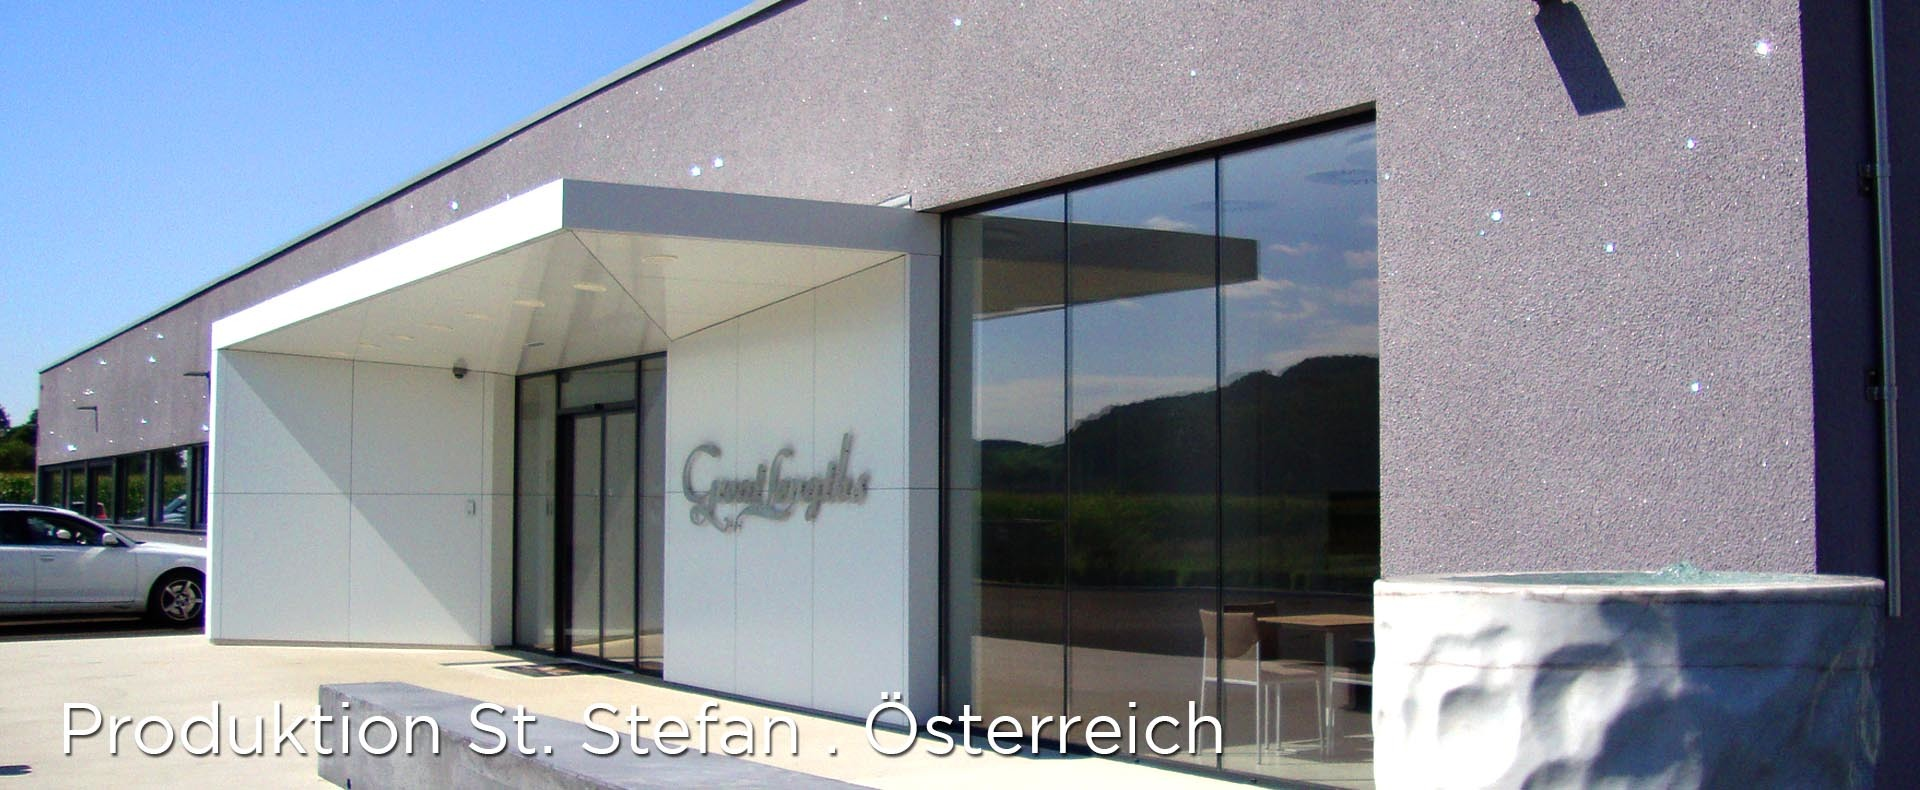 Produktion St. Stefan . Österreich (© Great Lengths)